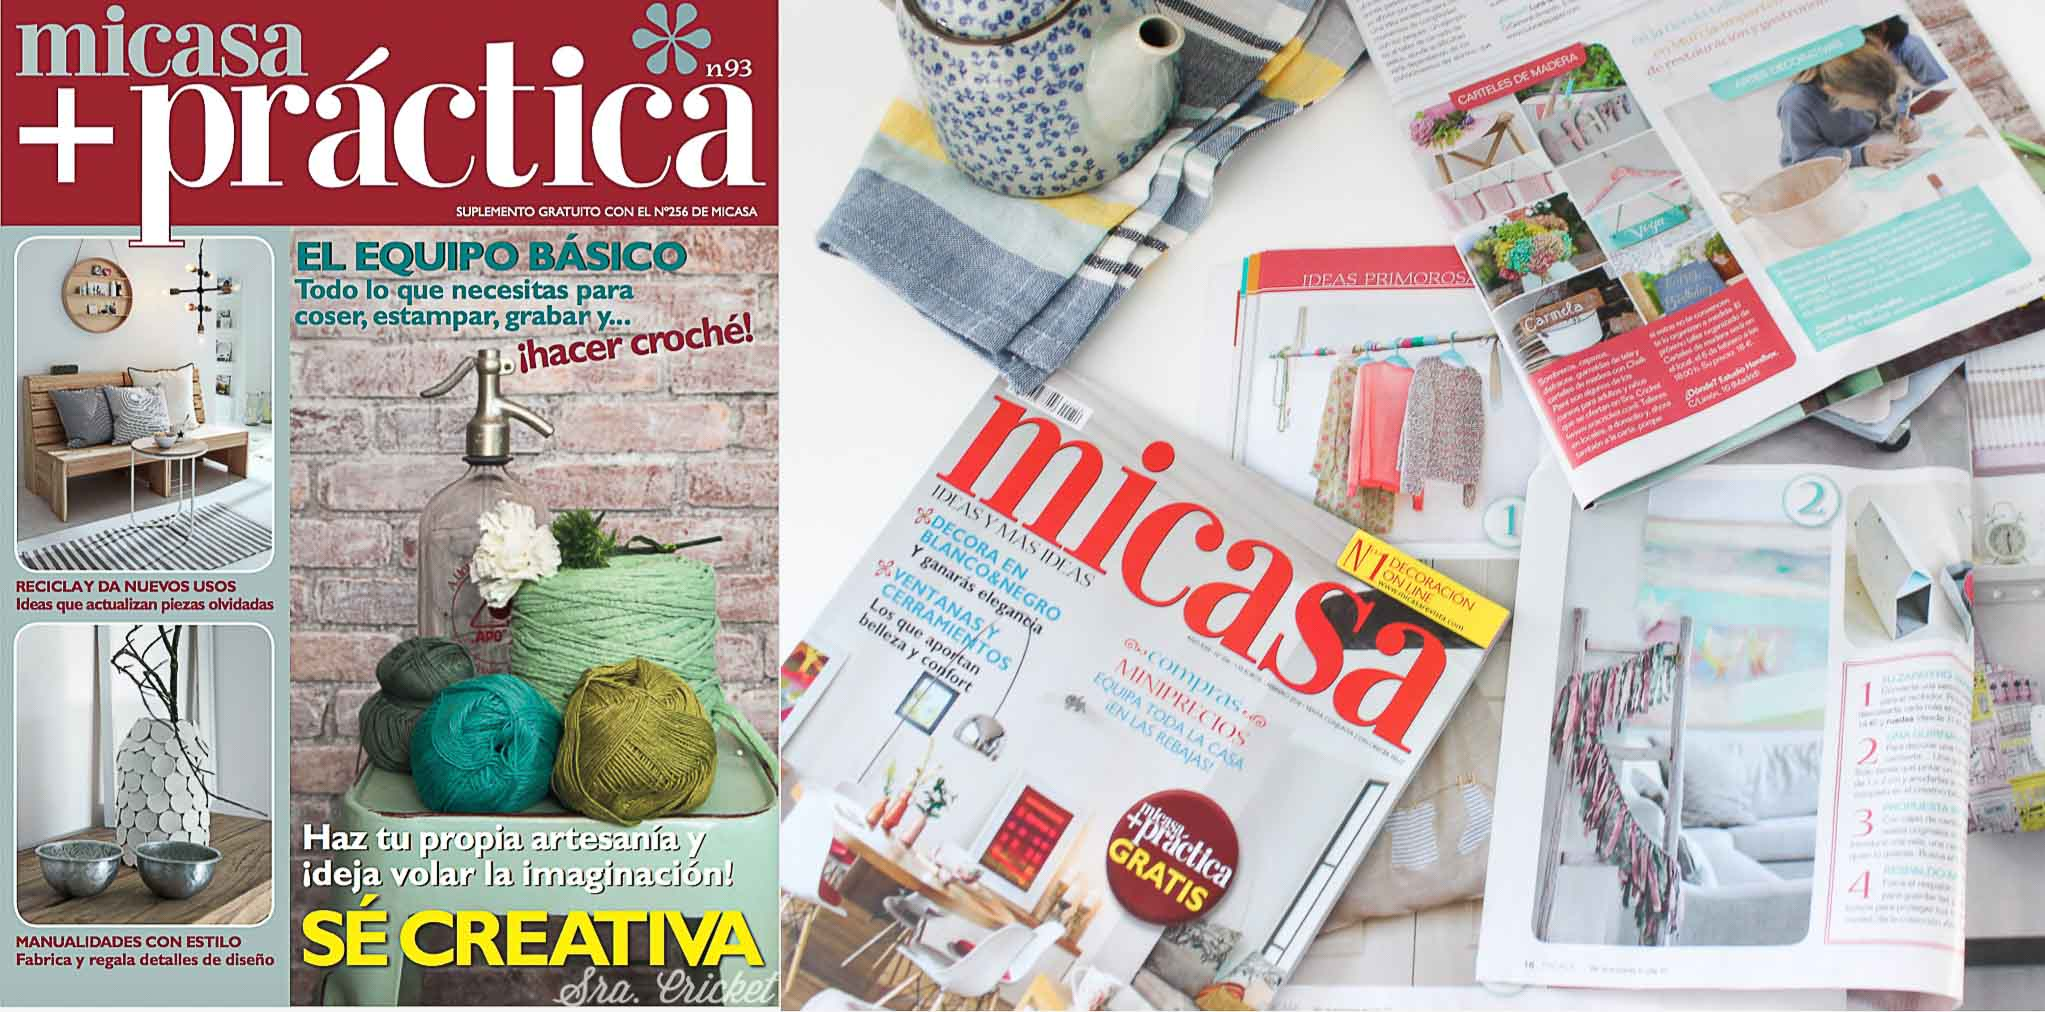 sra cricket en revista mi casa